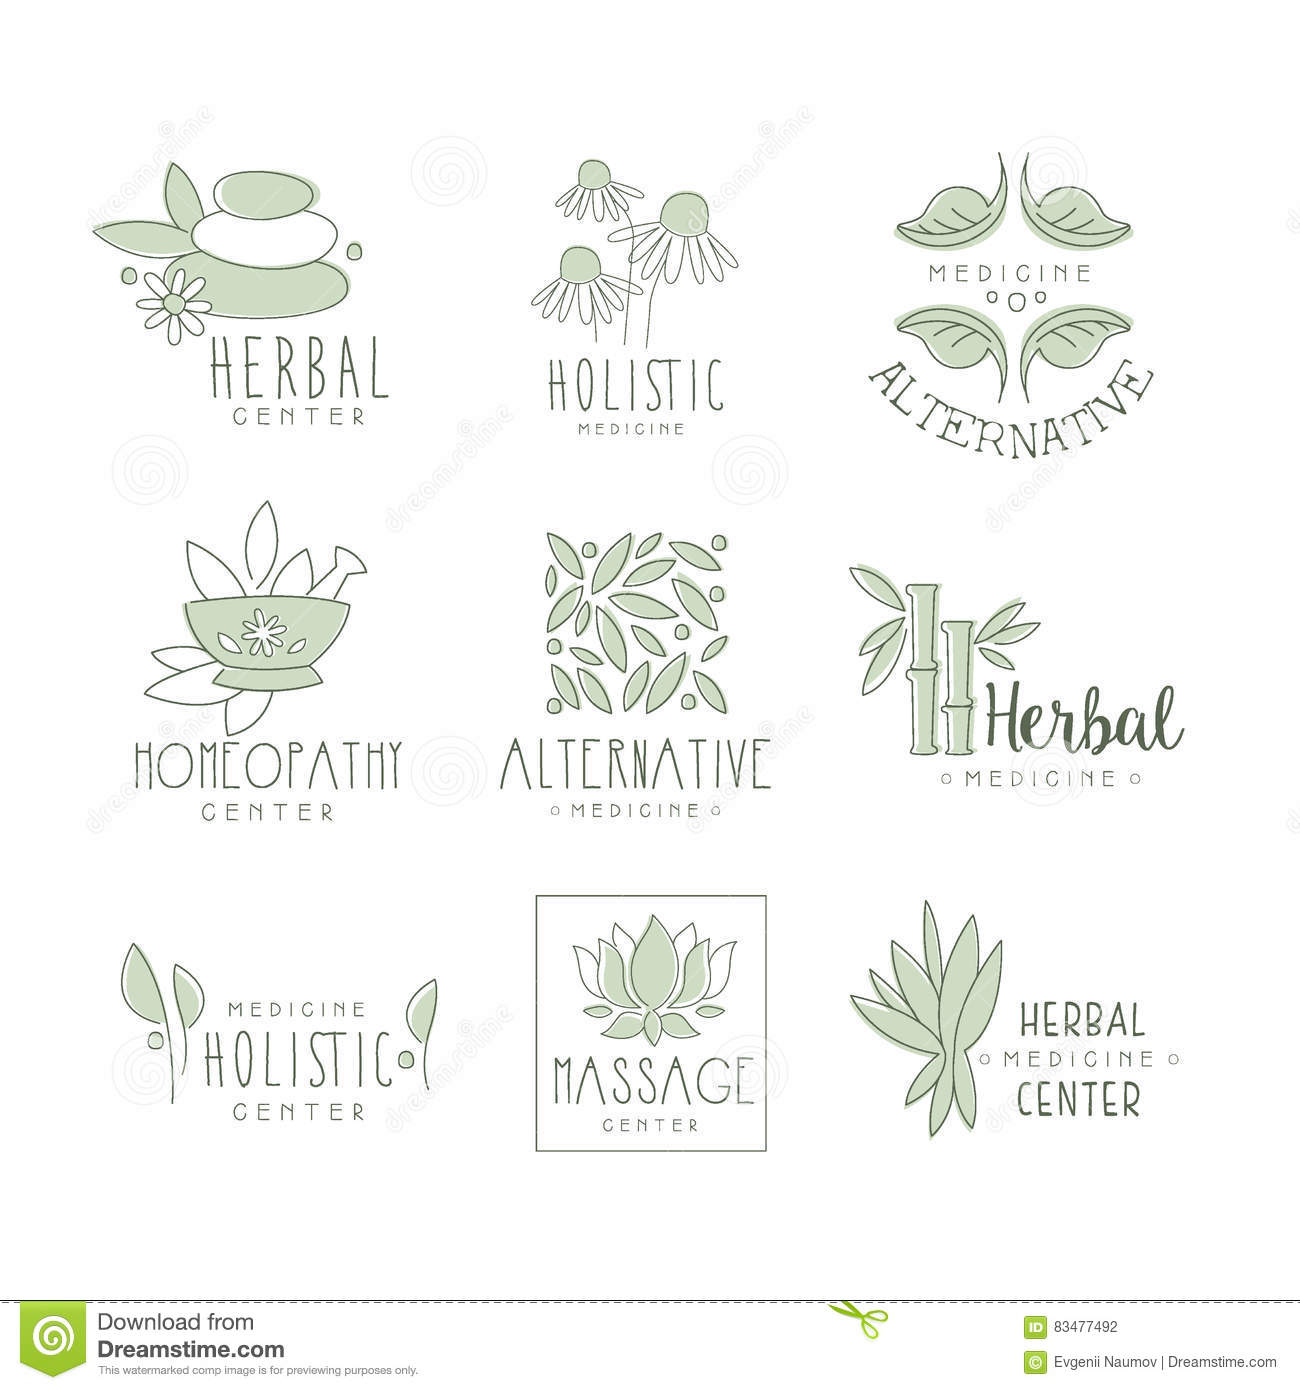 Center for holistic herbal therapy - Alternative Medicine Center With Oriental Herbal Treatment And Holistic Massage Procedures Collection Of Label Templates Stock